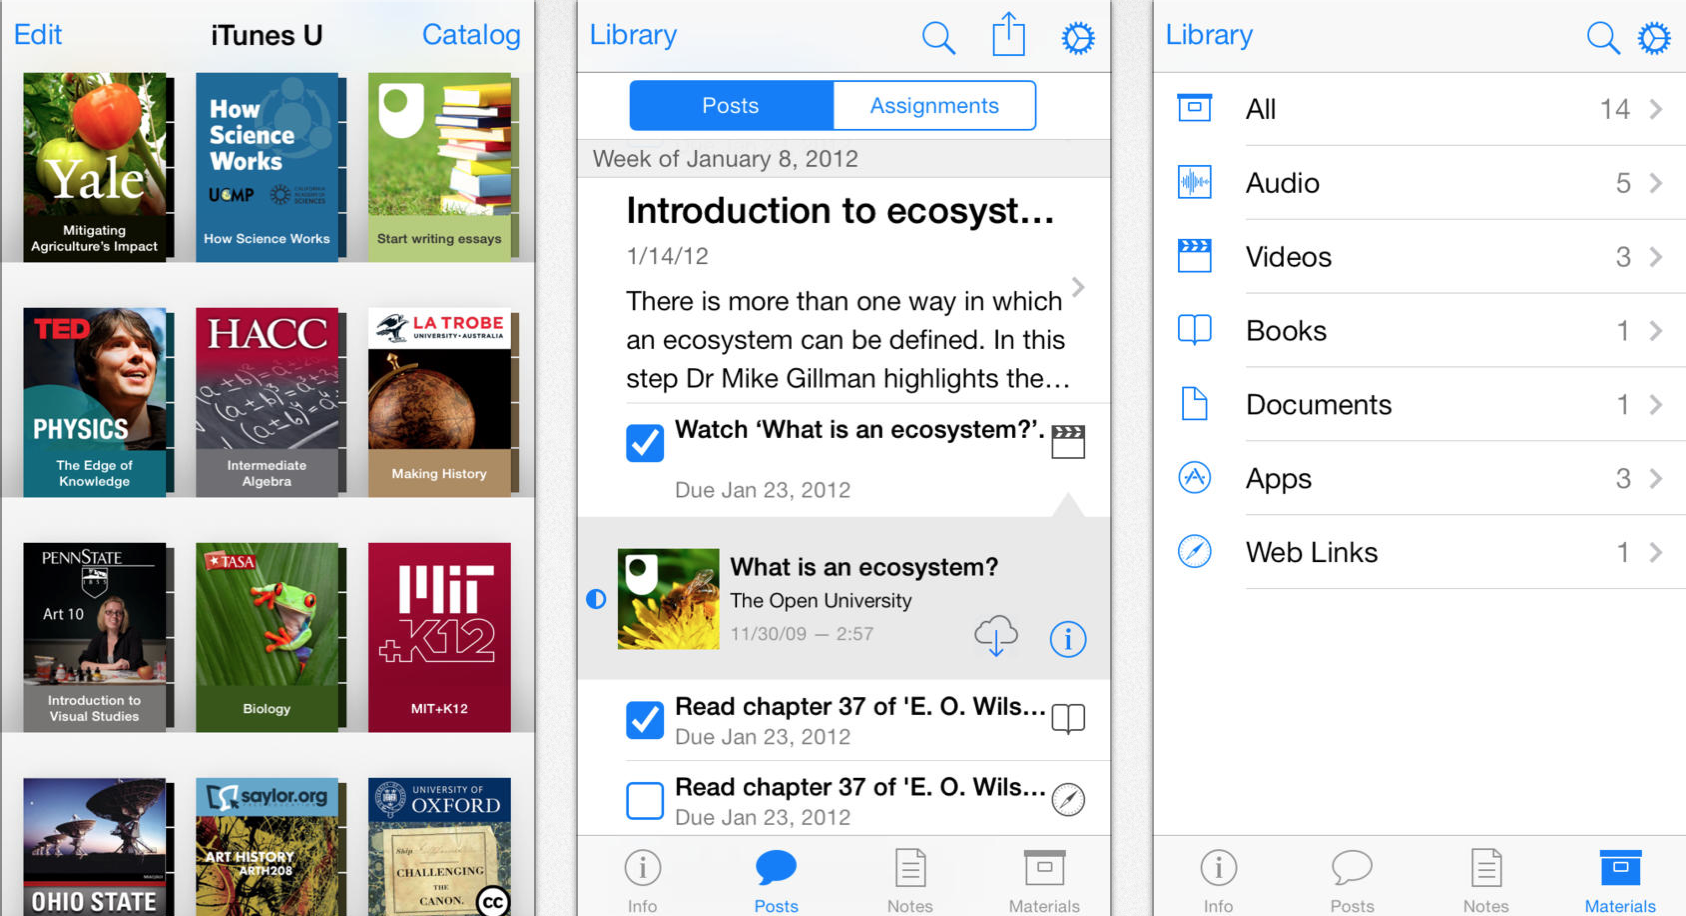 Apple revamps design of iBooks and iTunes U for iOS 7 on